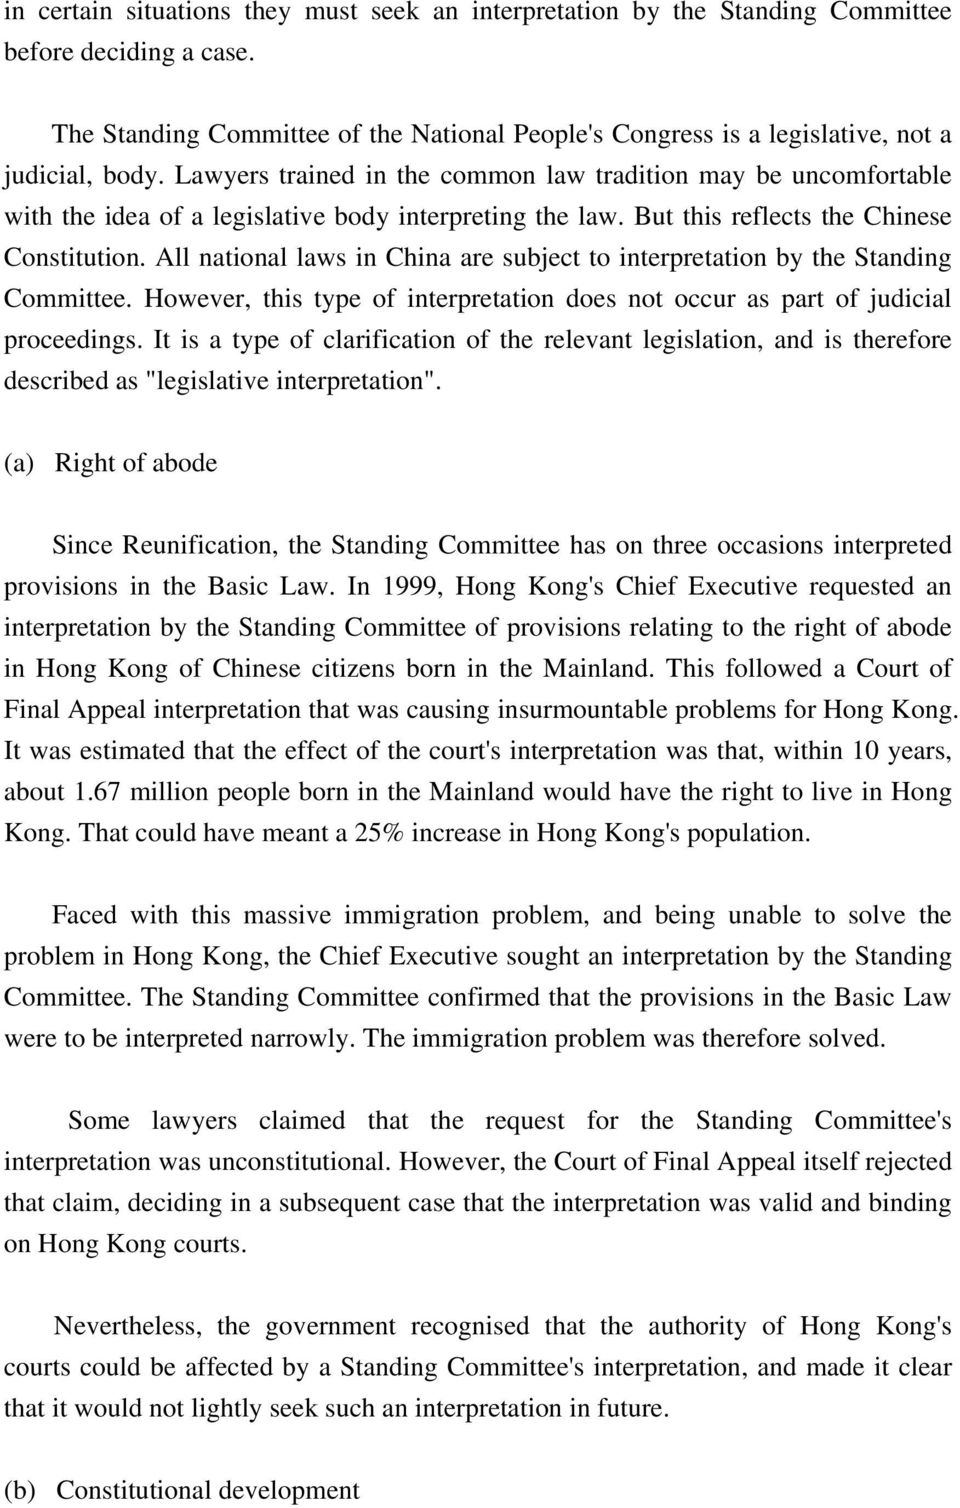 Lawyers trained in the common law tradition may be uncomfortable with the idea of a legislative body interpreting the law. But this reflects the Chinese Constitution.